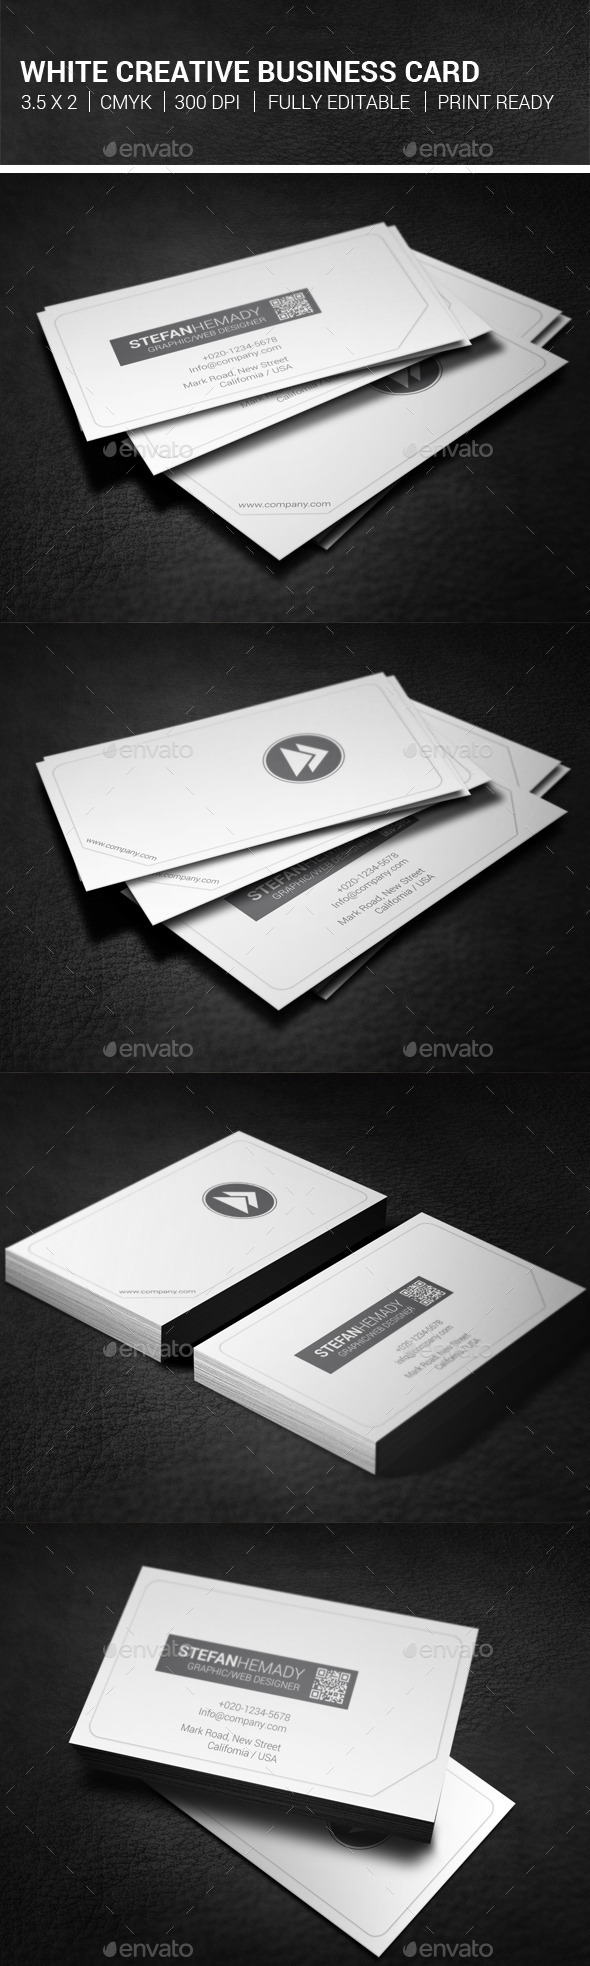 White Creative Business Card - Creative Business Cards